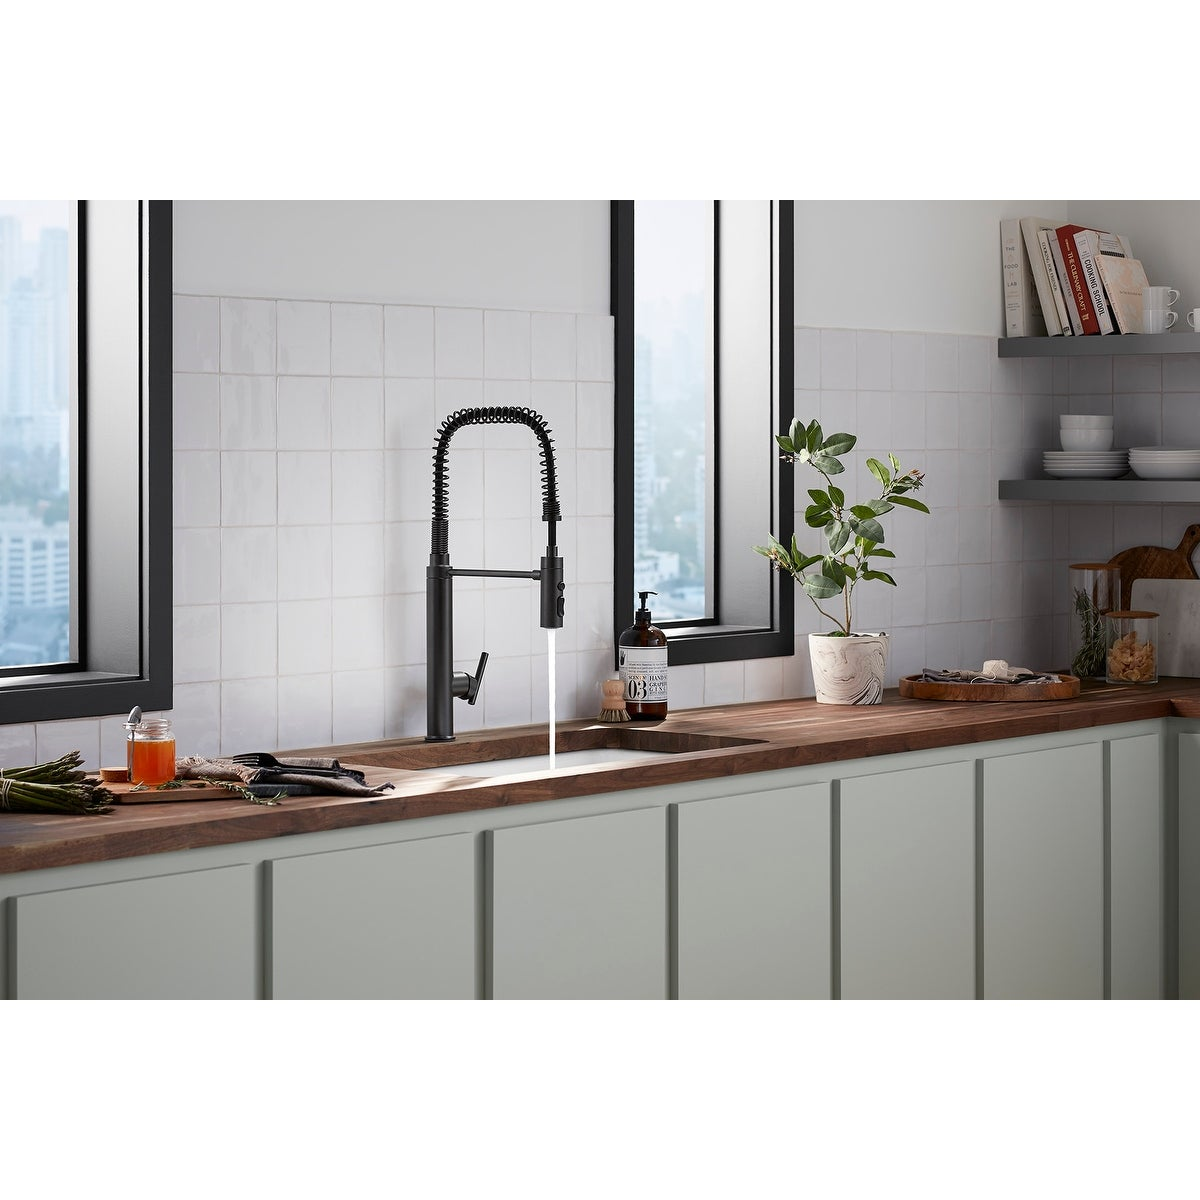 Kohler K 24982 Purist 1 5 Gpm Single Hole Pre Rinse Kitchen Faucet With Sweep Spray Docknetik And Masterclean Technologies